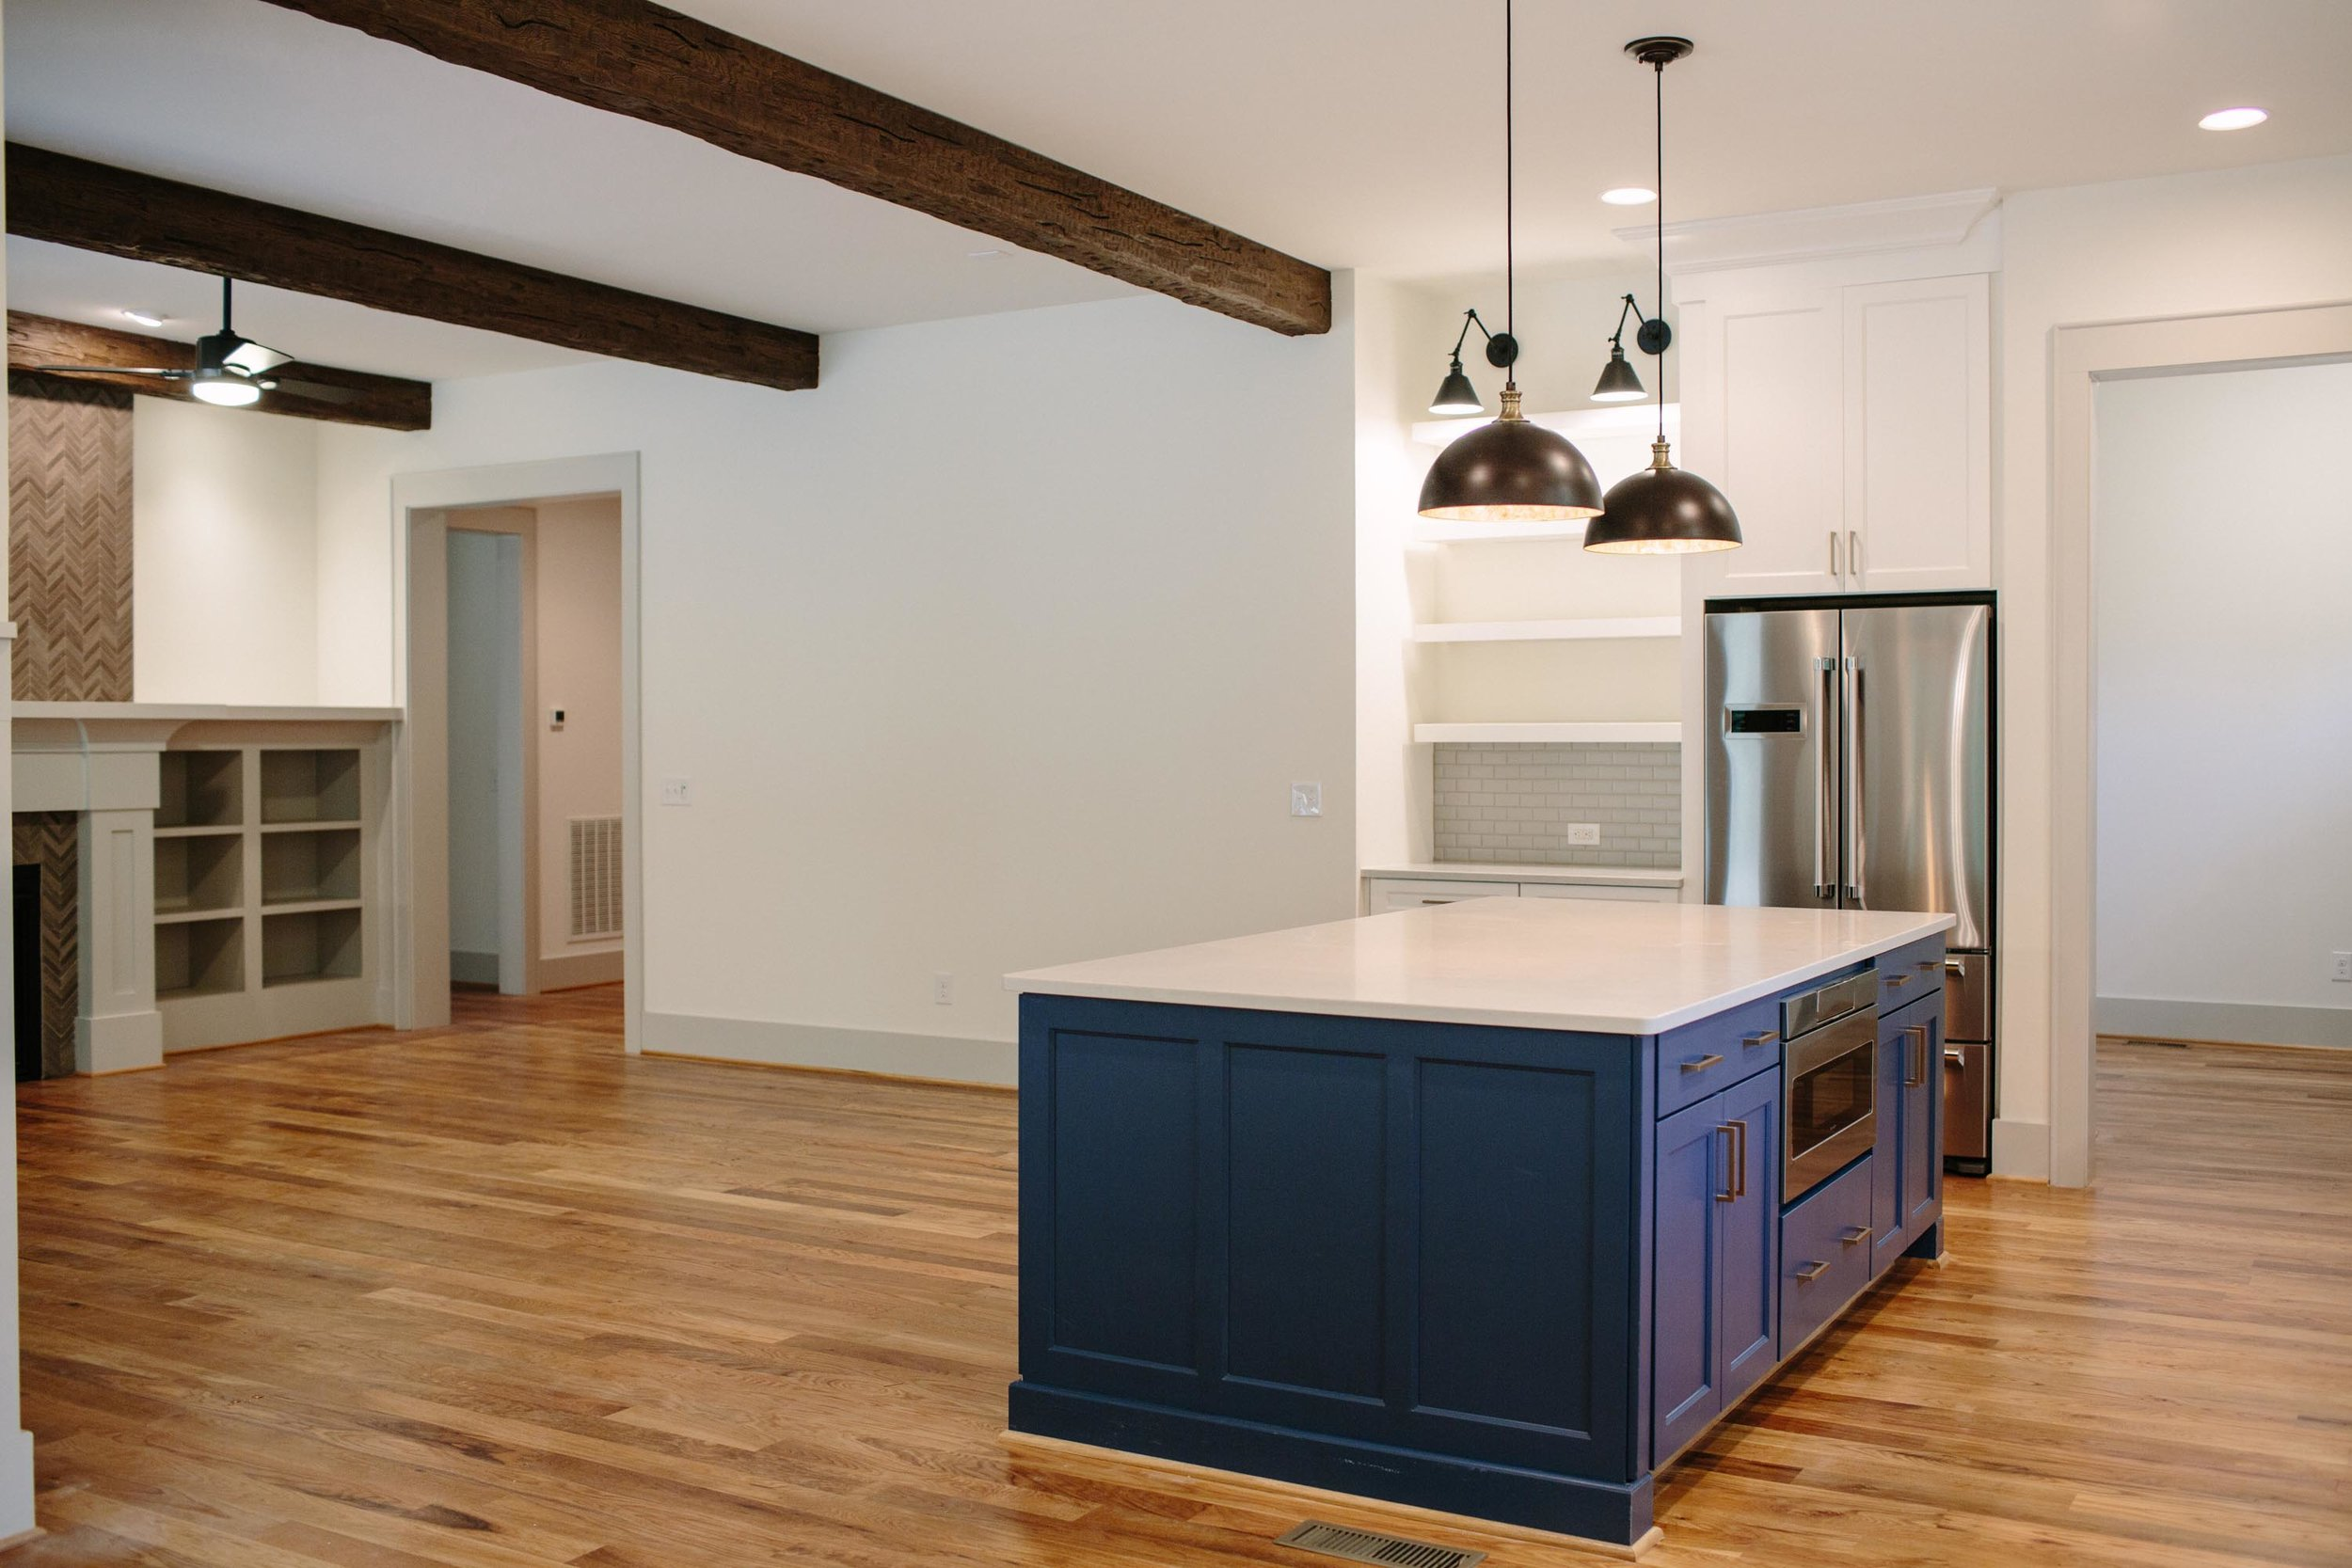 Modern kitchen with blue cabinet and refrigerator